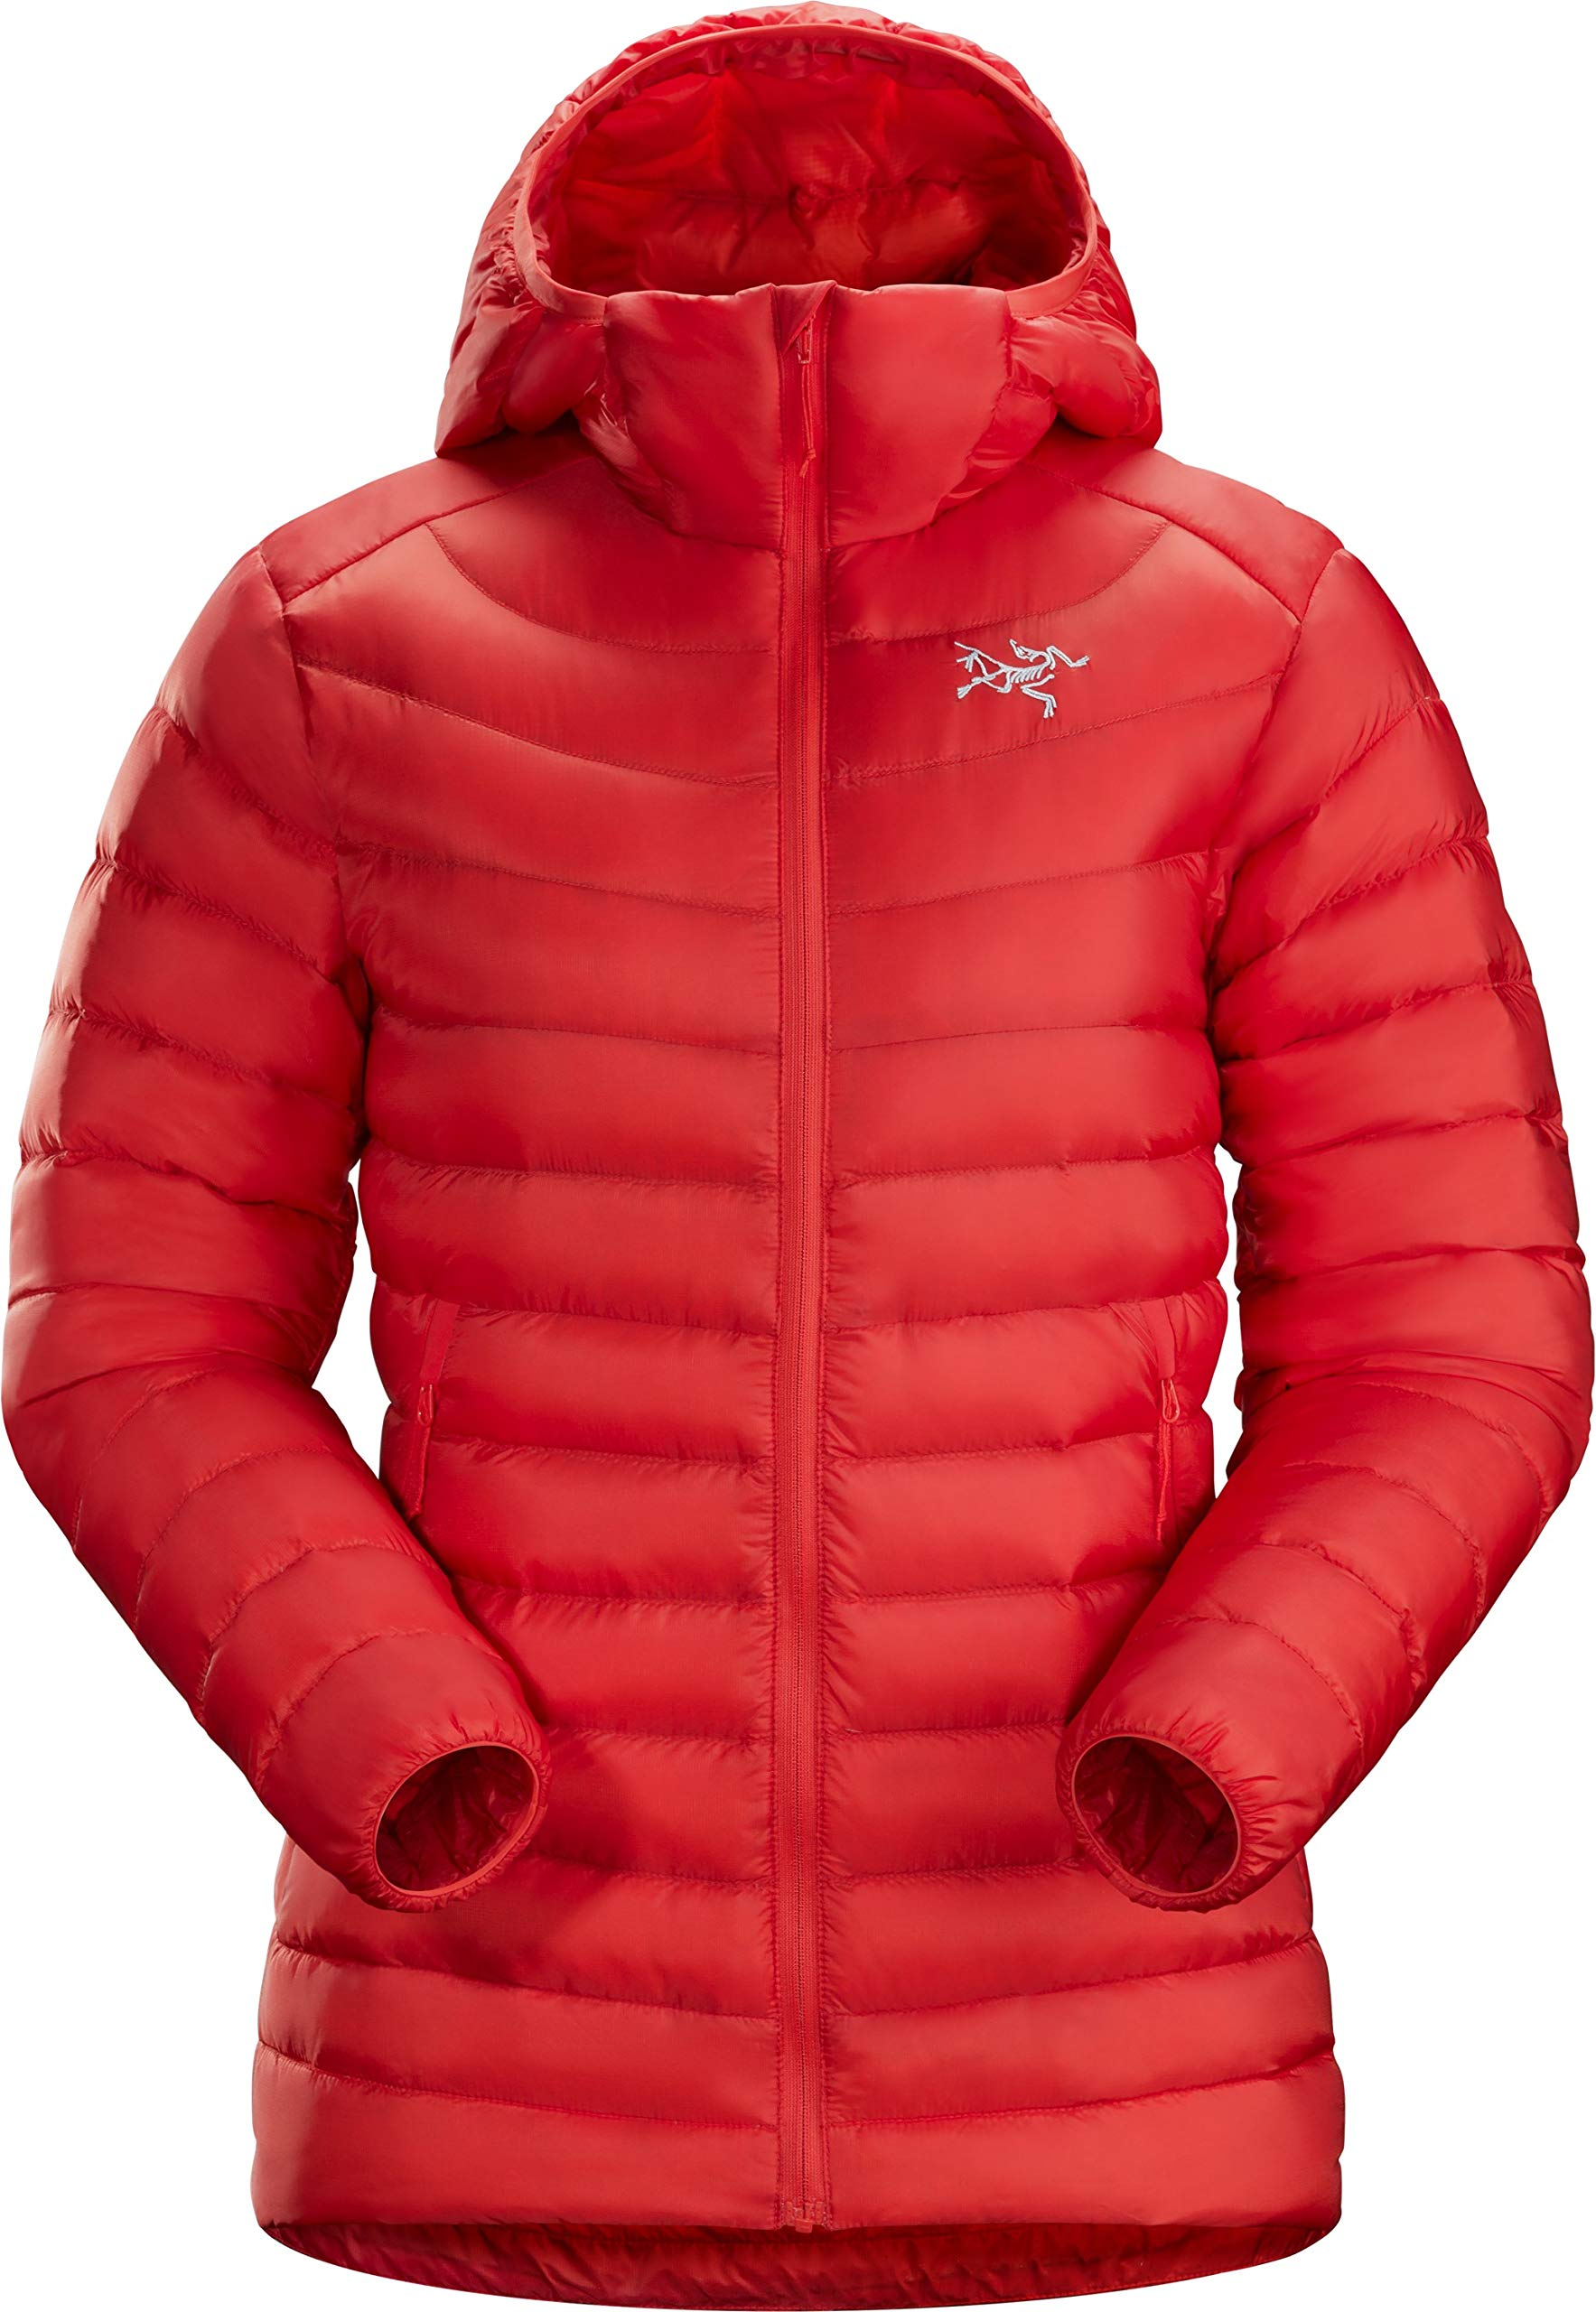 Arc'teryx Cerium LT Hoody Women's (Hard Coral, Large) by Arc'teryx